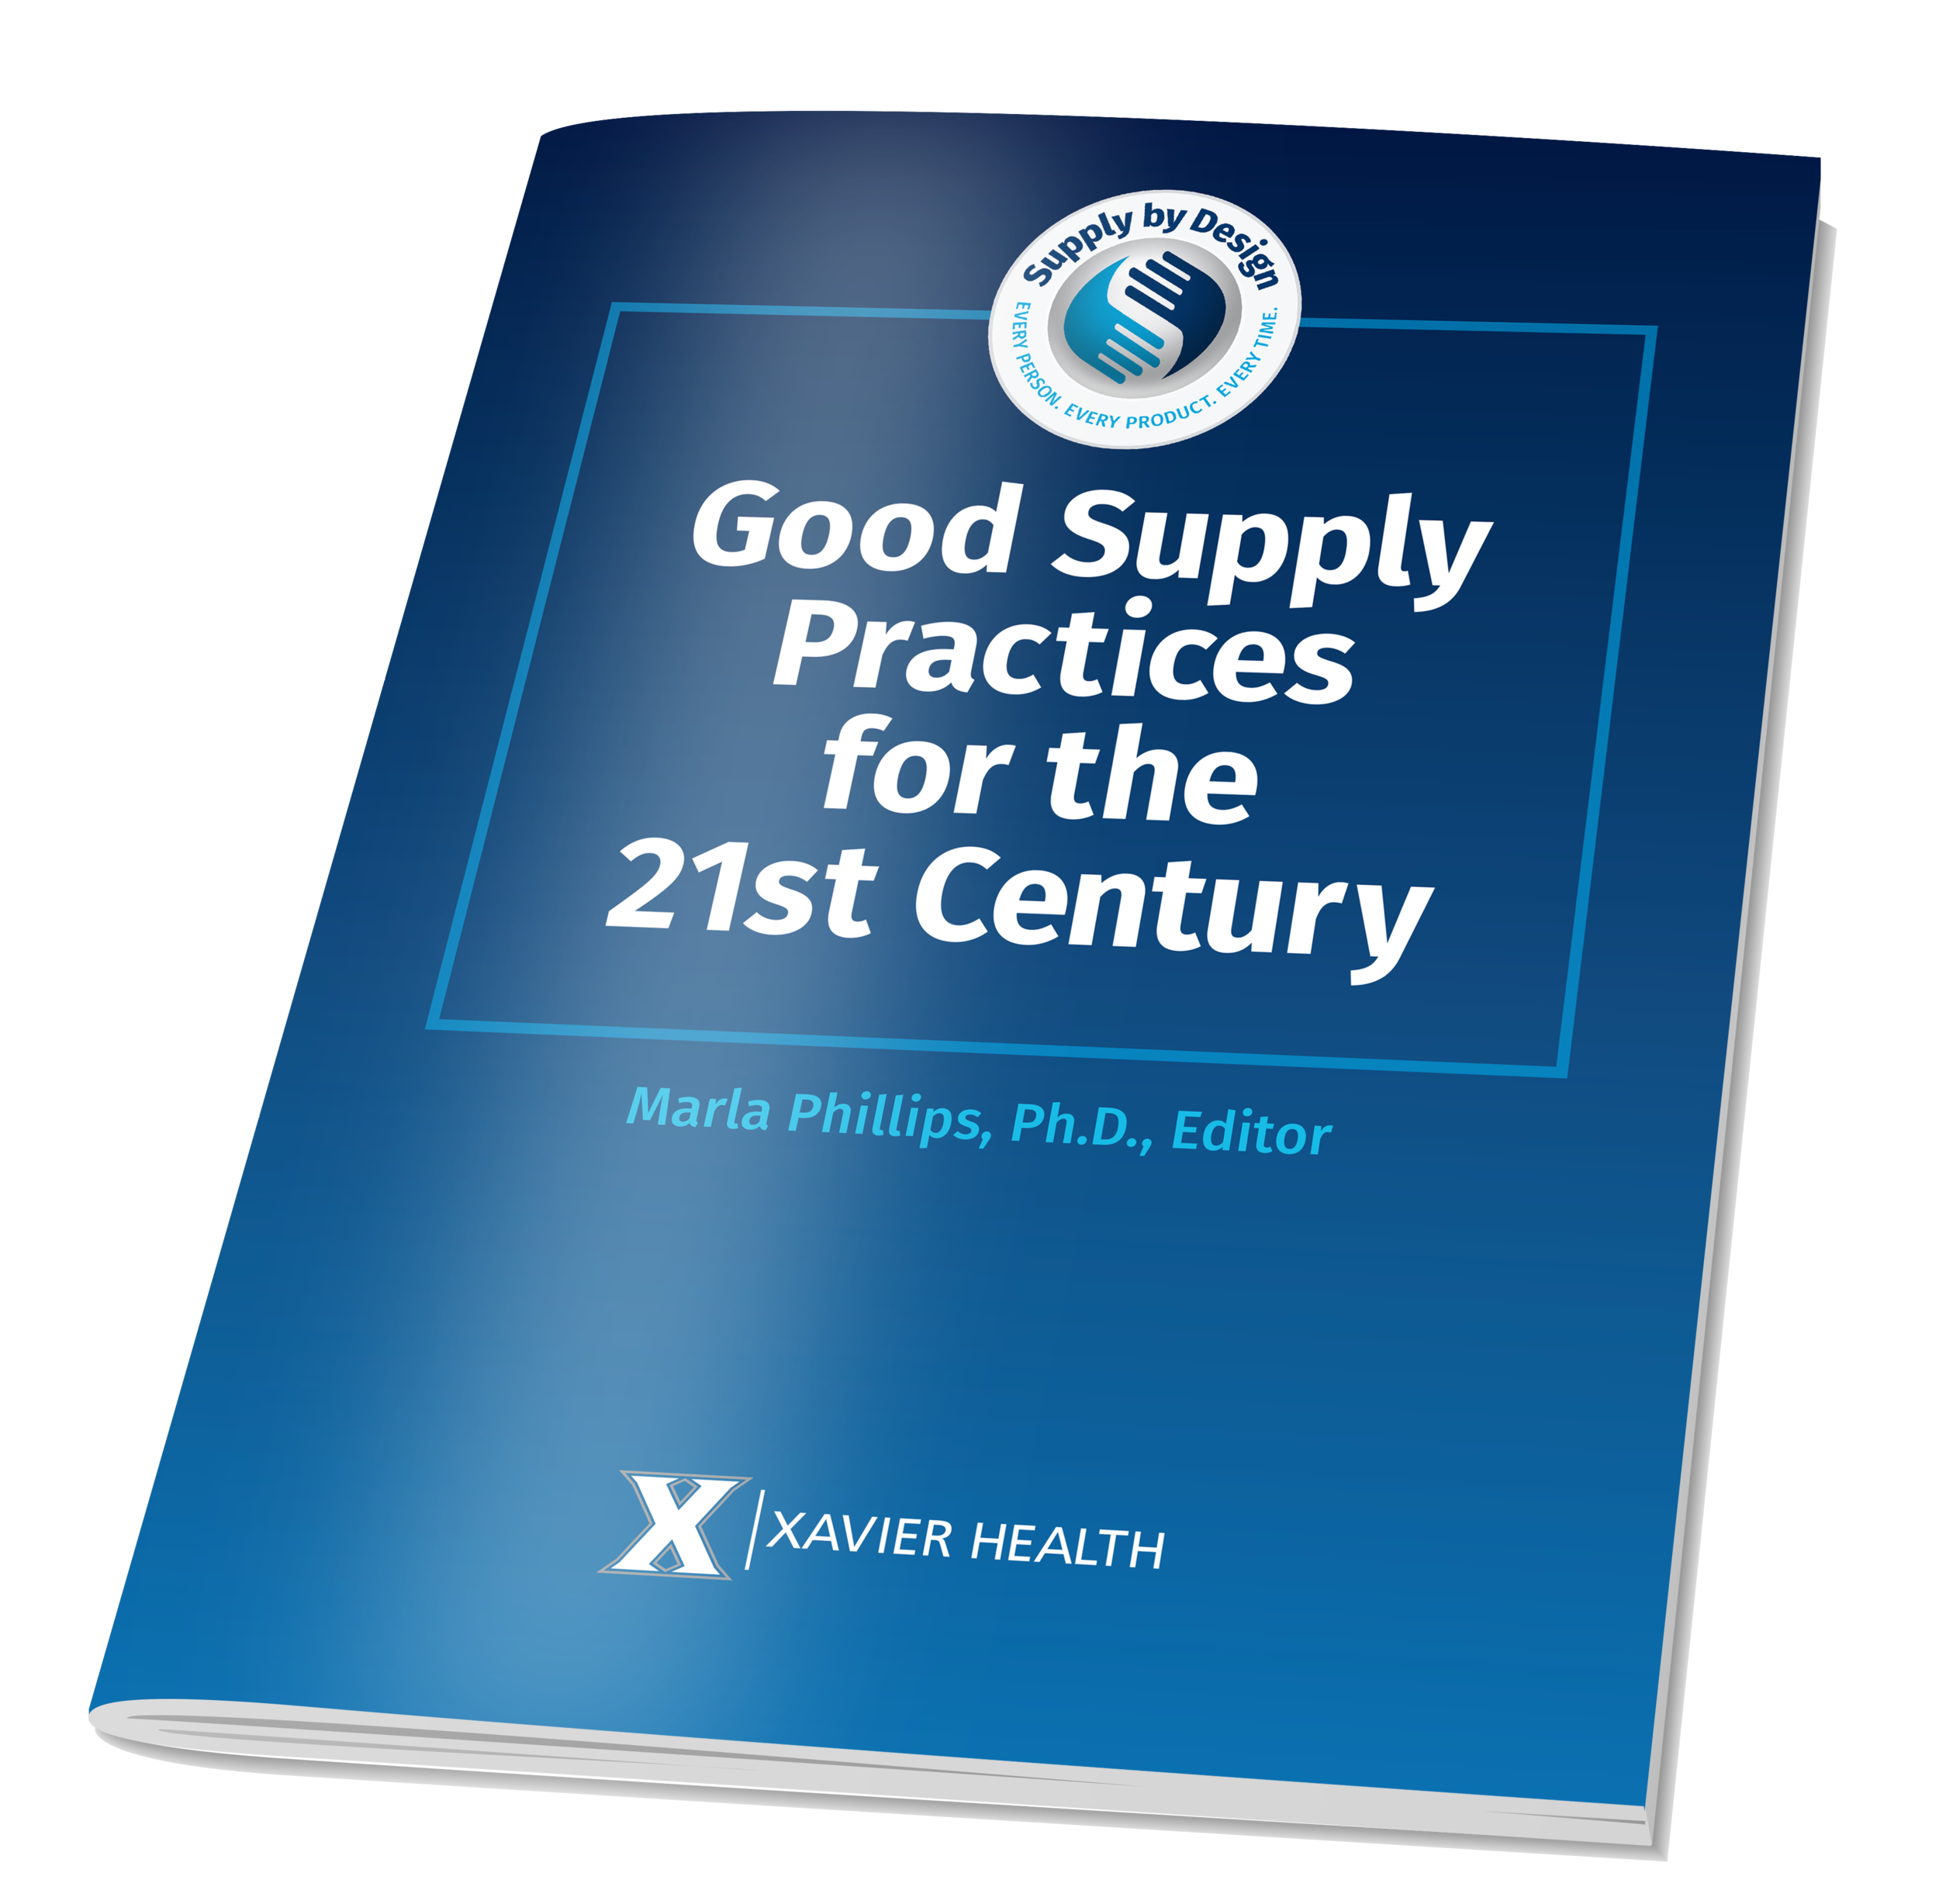 Good Supply Practices for the 21st Century